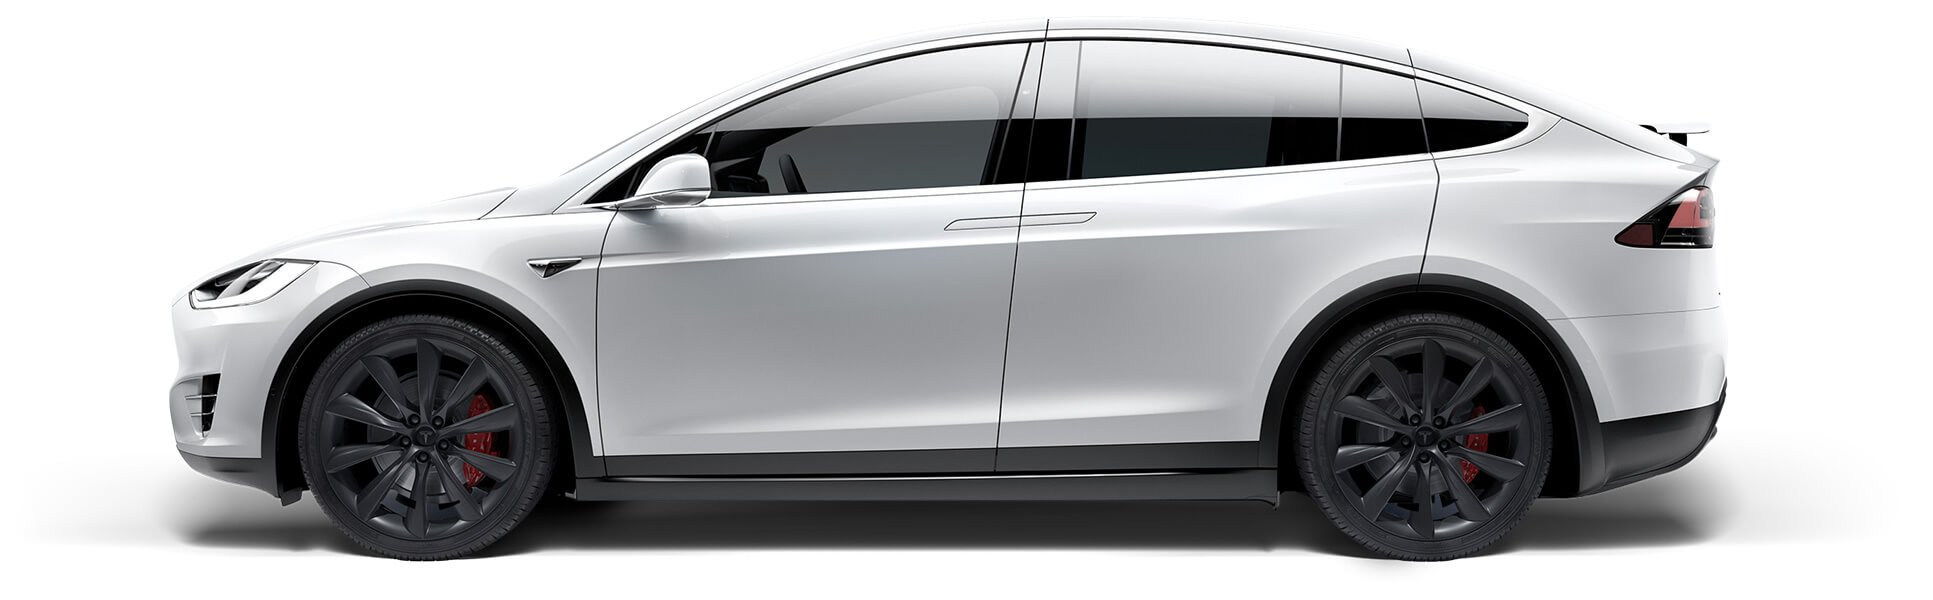 Side view of pearl white Model X